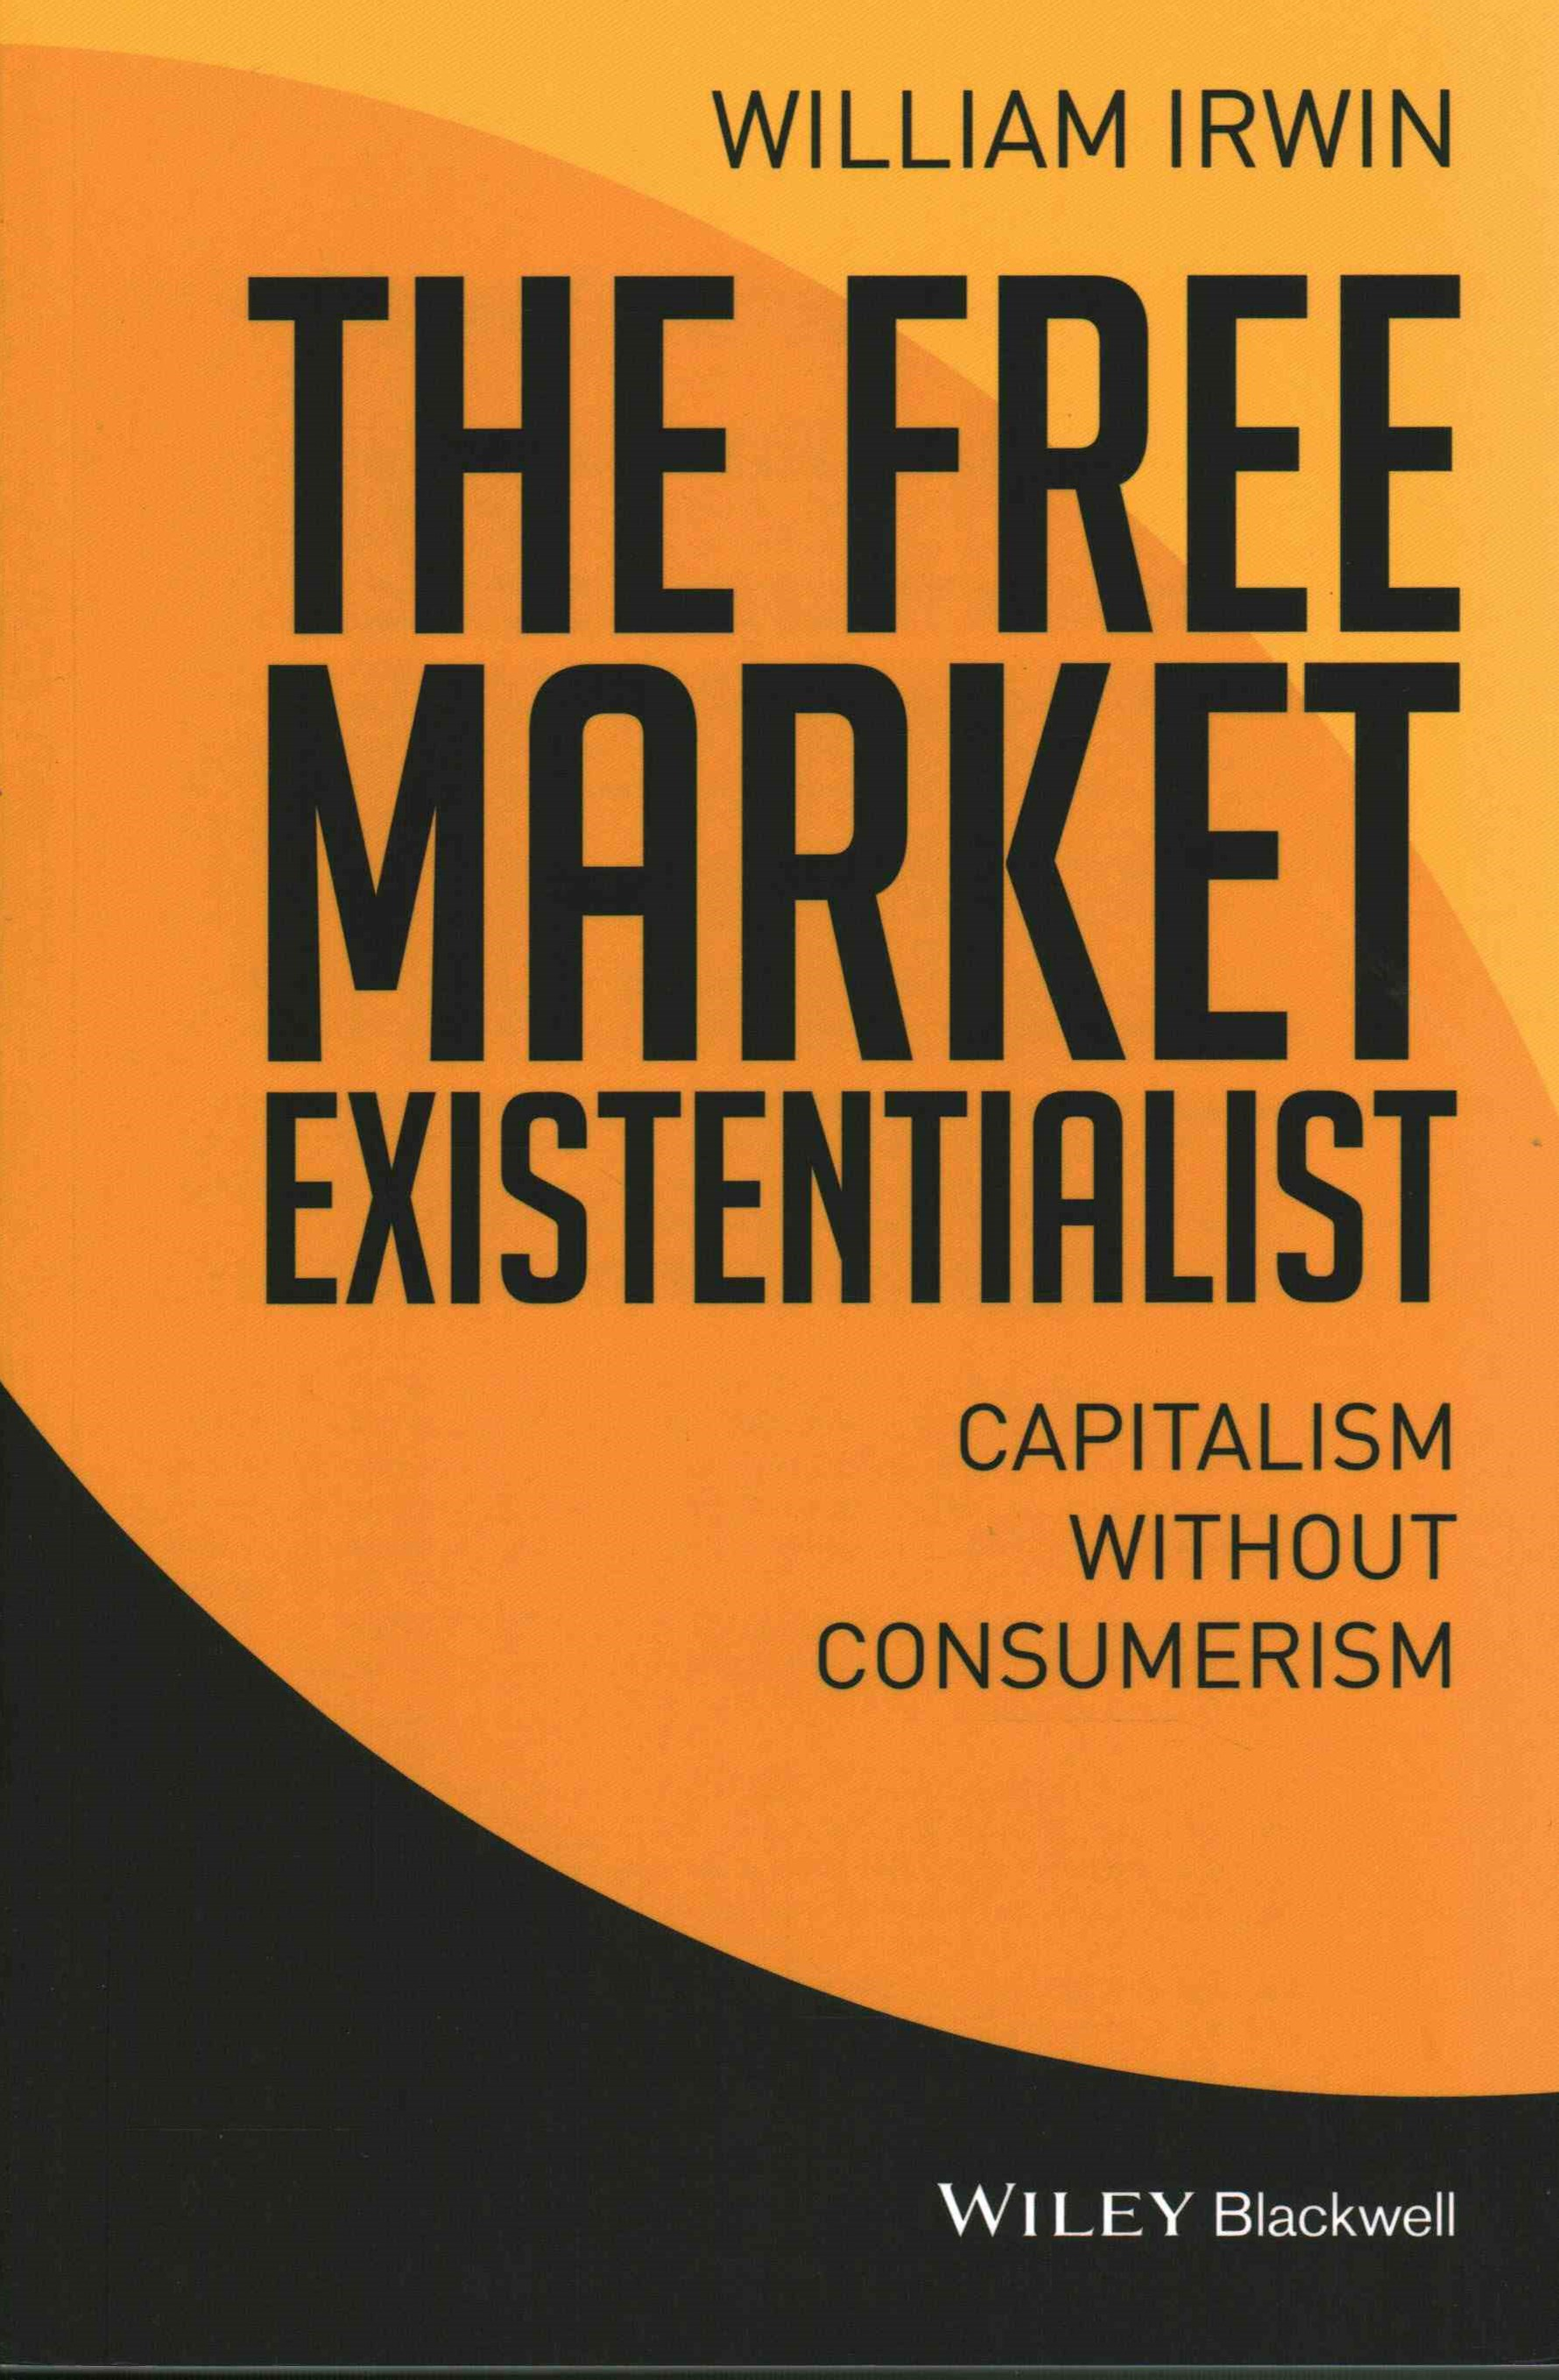 The Free Market Existentialist - Capitalism       Without Consumerism